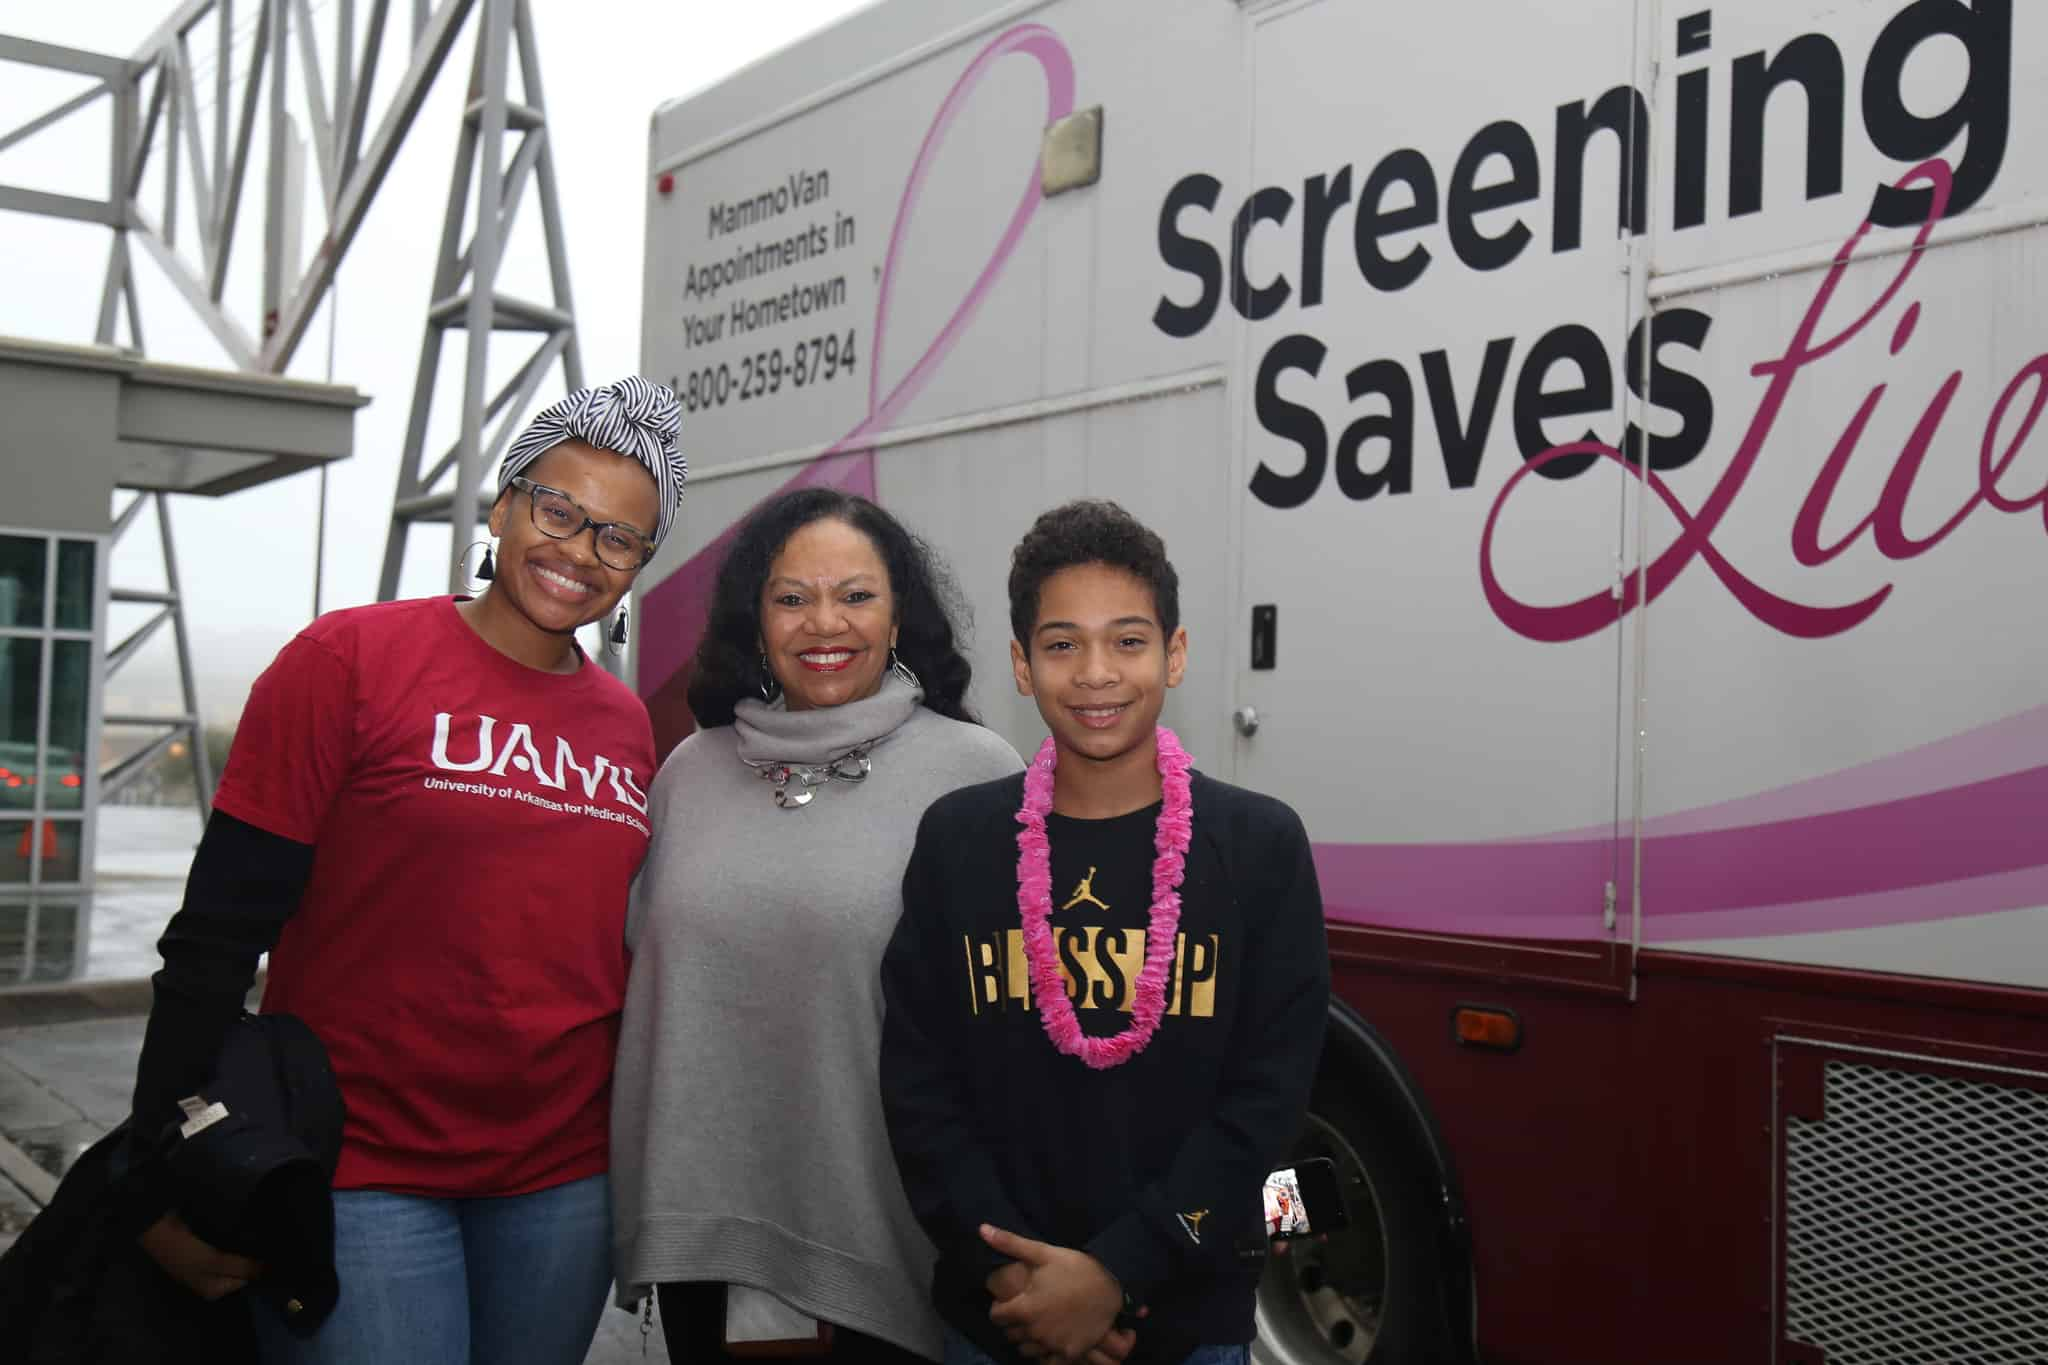 Expo volunteers (from left) Margaret Woods, Ronda Henry-Tillman, M.D., and her son Anders Tillman in front of the UAMS MammoVan.